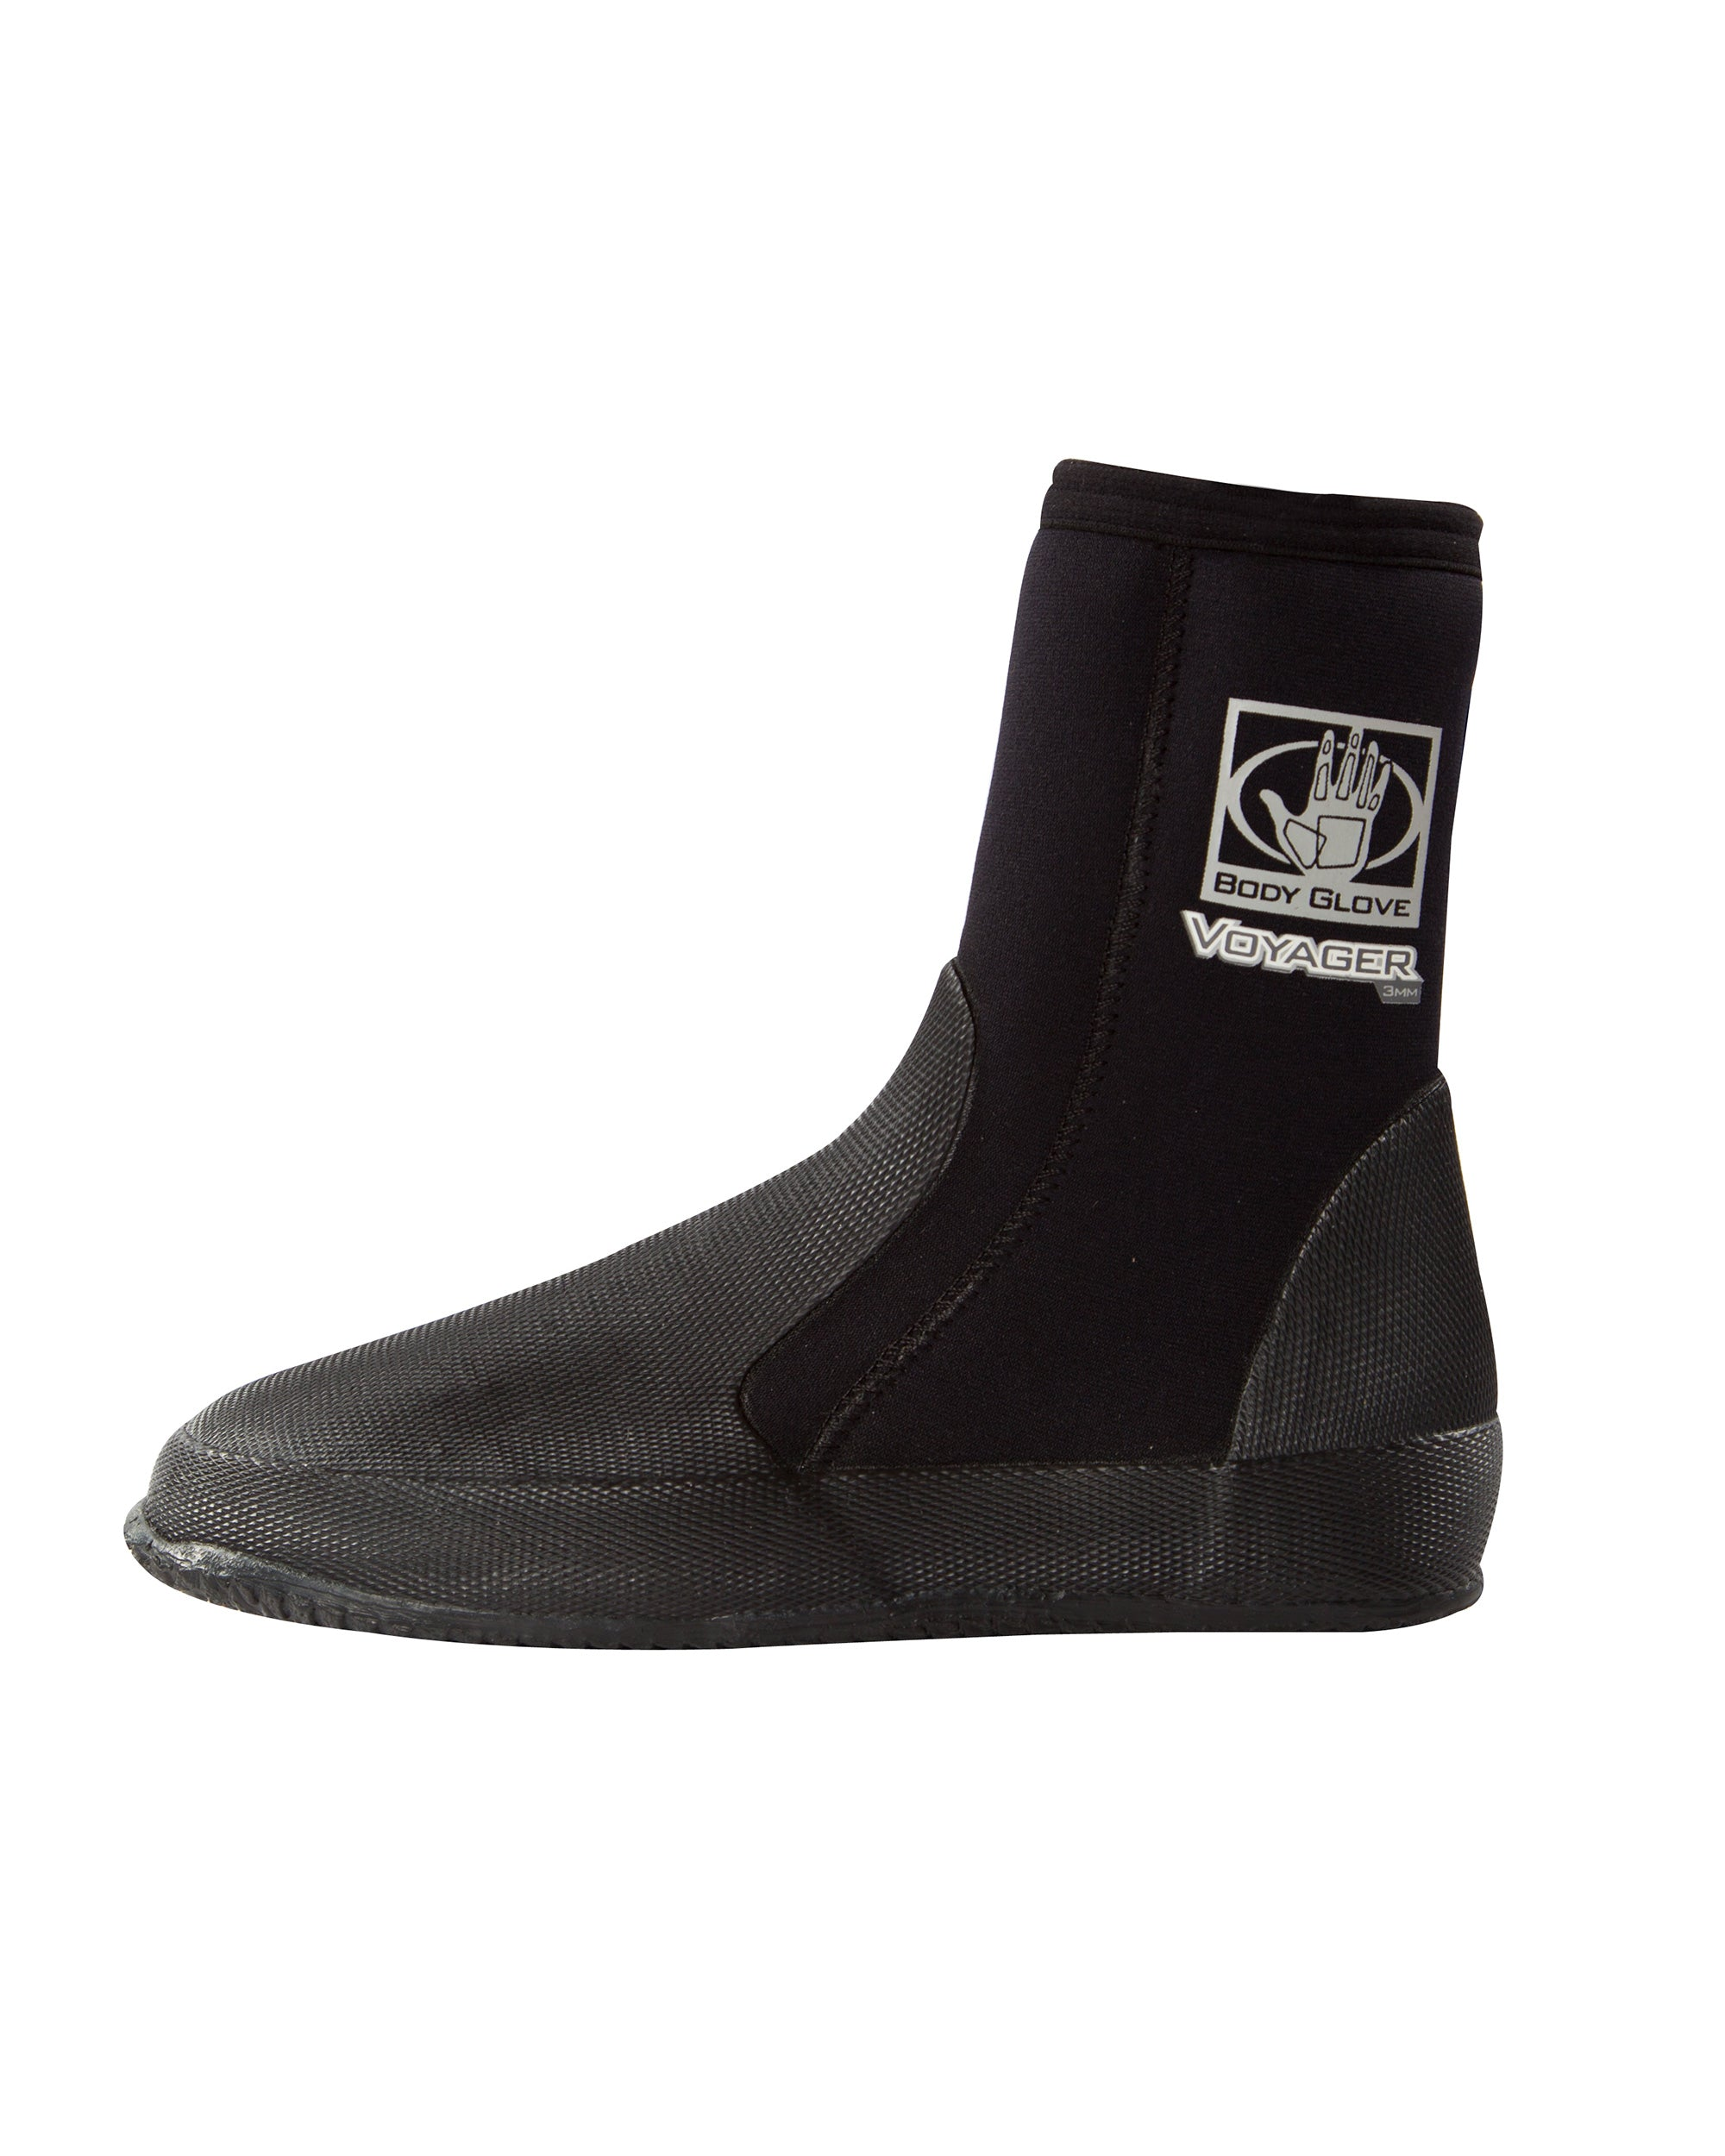 Voyager 5mm Round-Toe Boot - Black